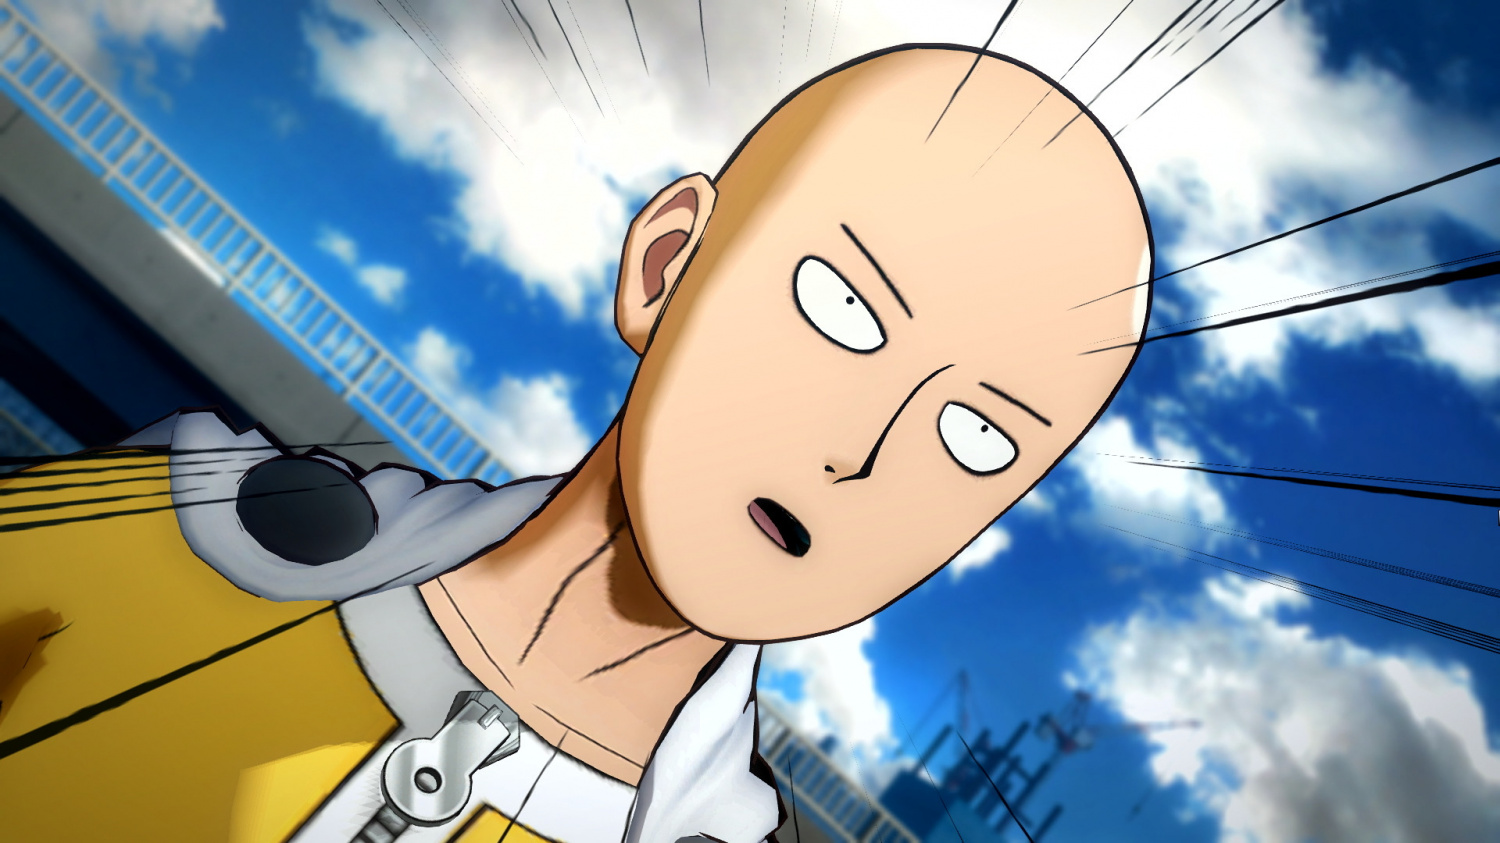 One Punch Man Chapter 140 Release Date Updates from Yusuke Murata